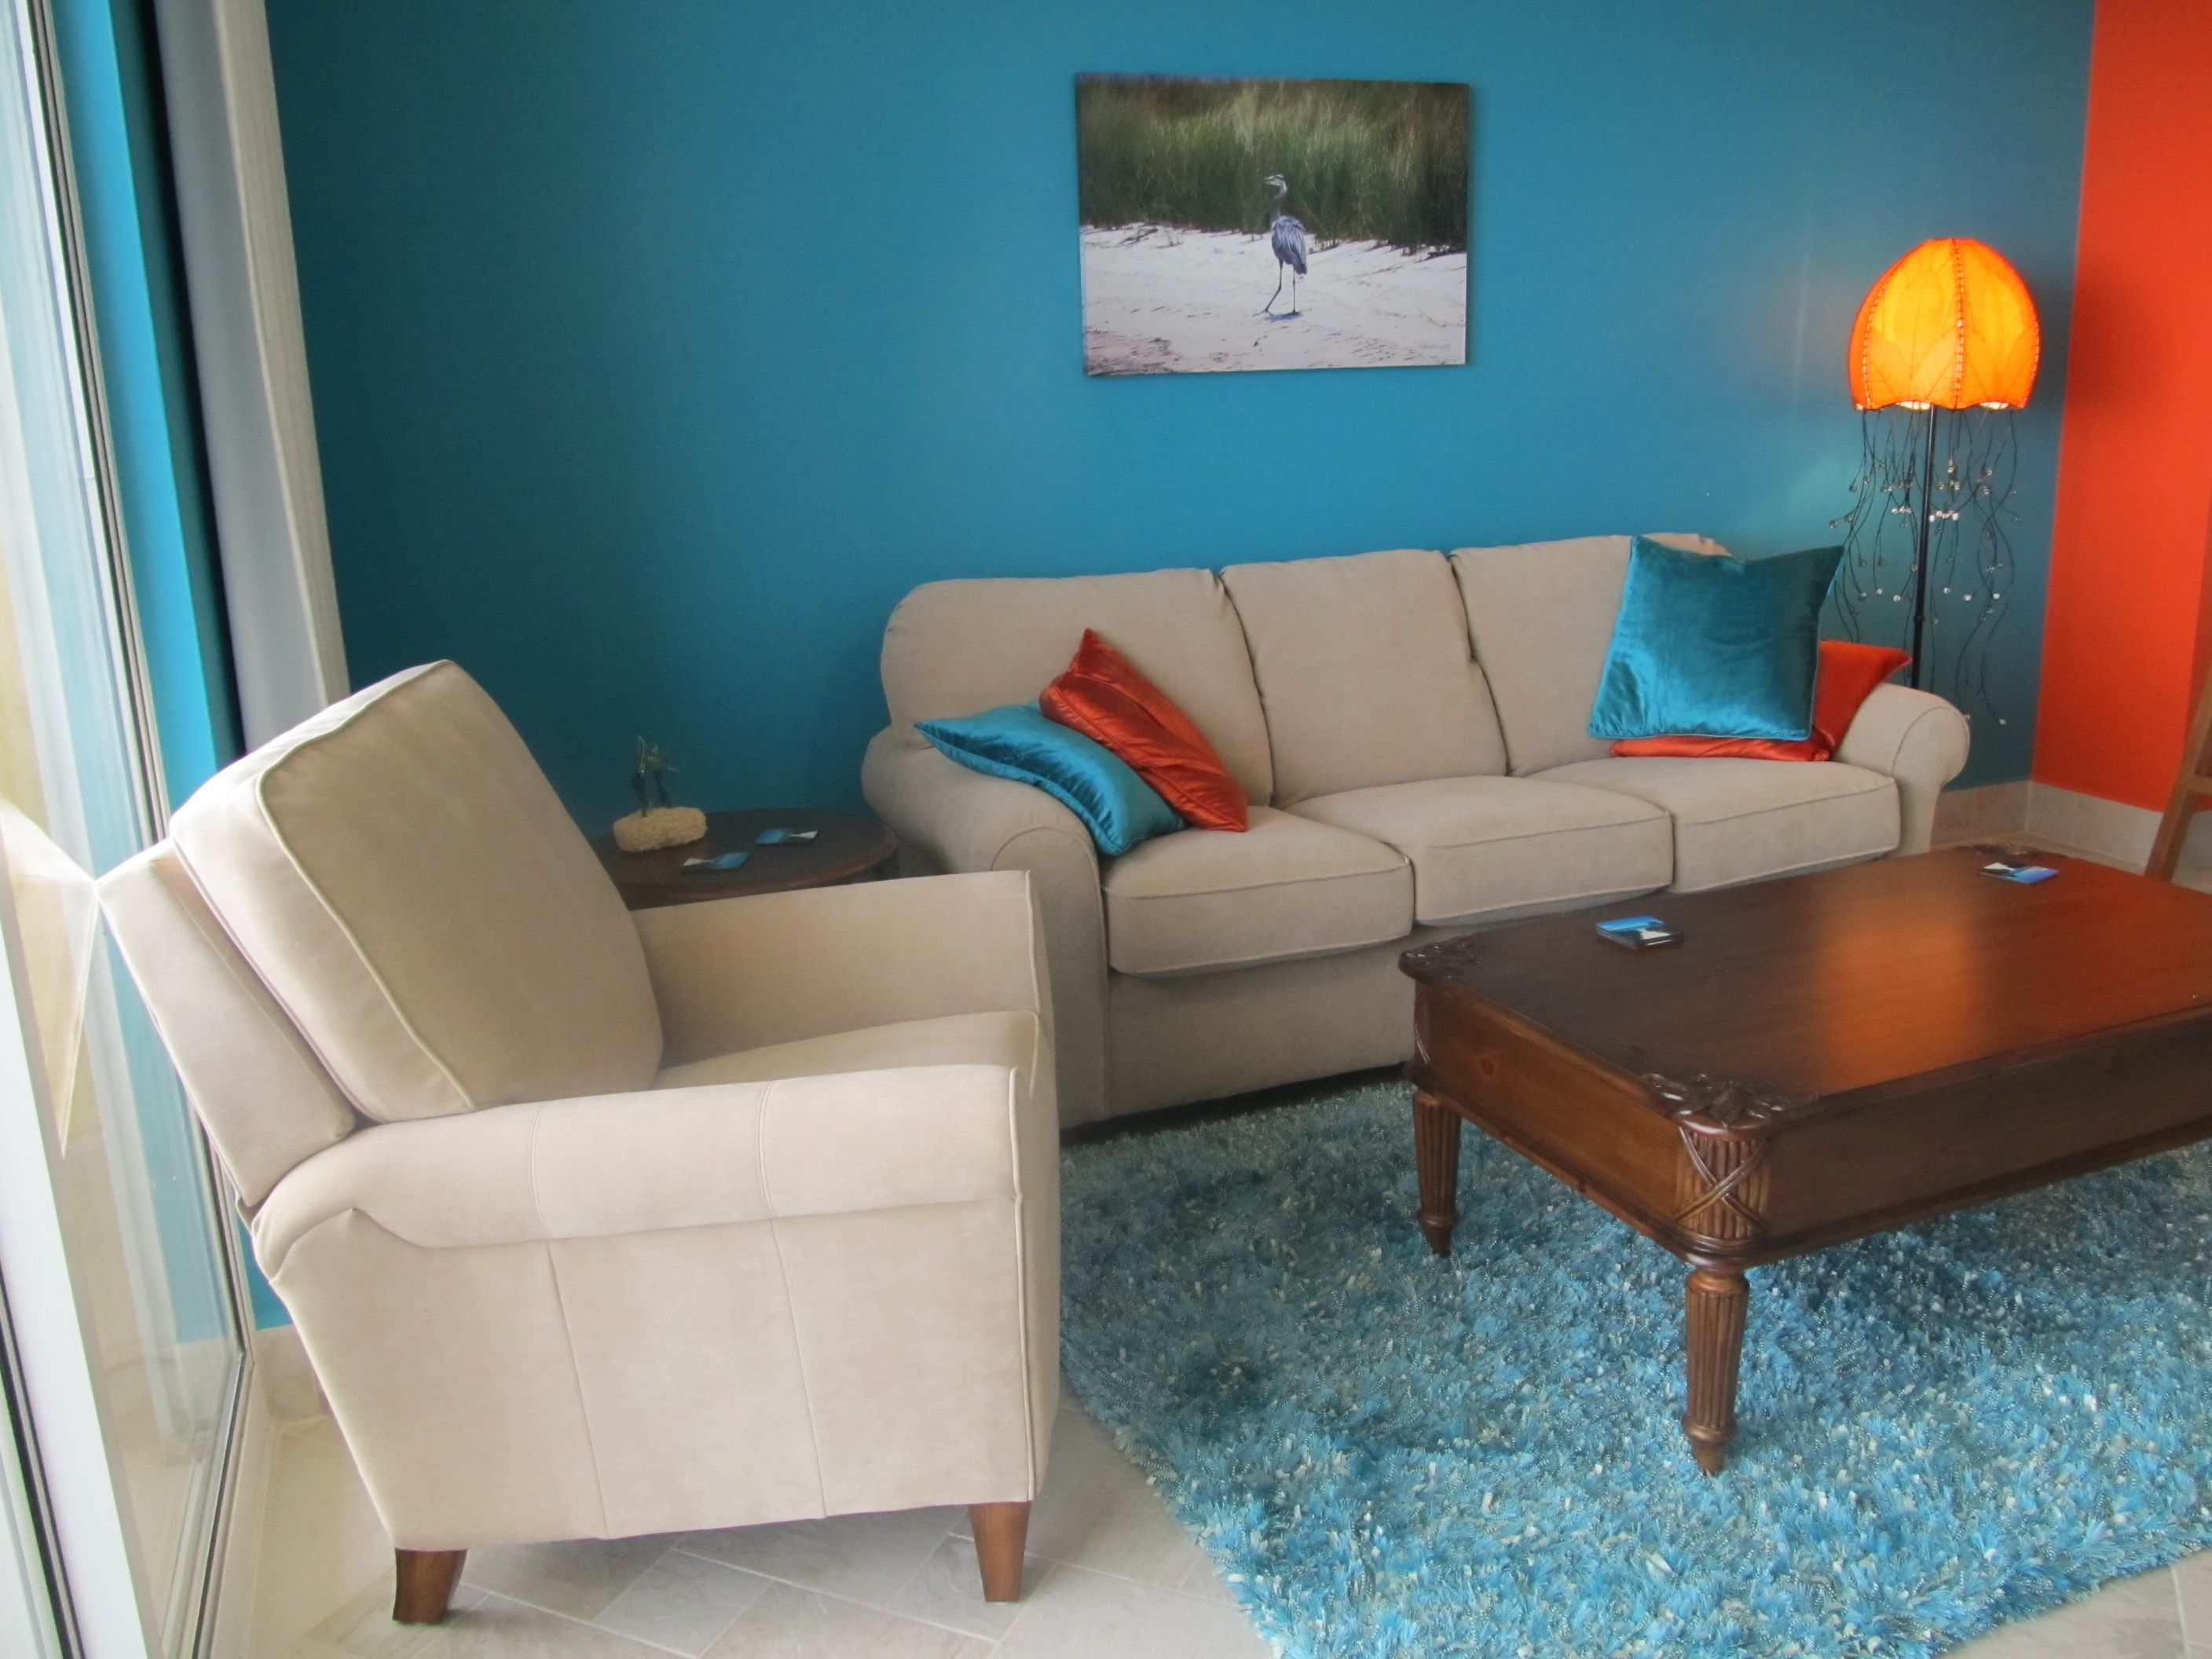 All Furniture From Shore House Furniture In PCB. Love This Rug   Matches  Perfectly! Photography By Shadowindz Designz.